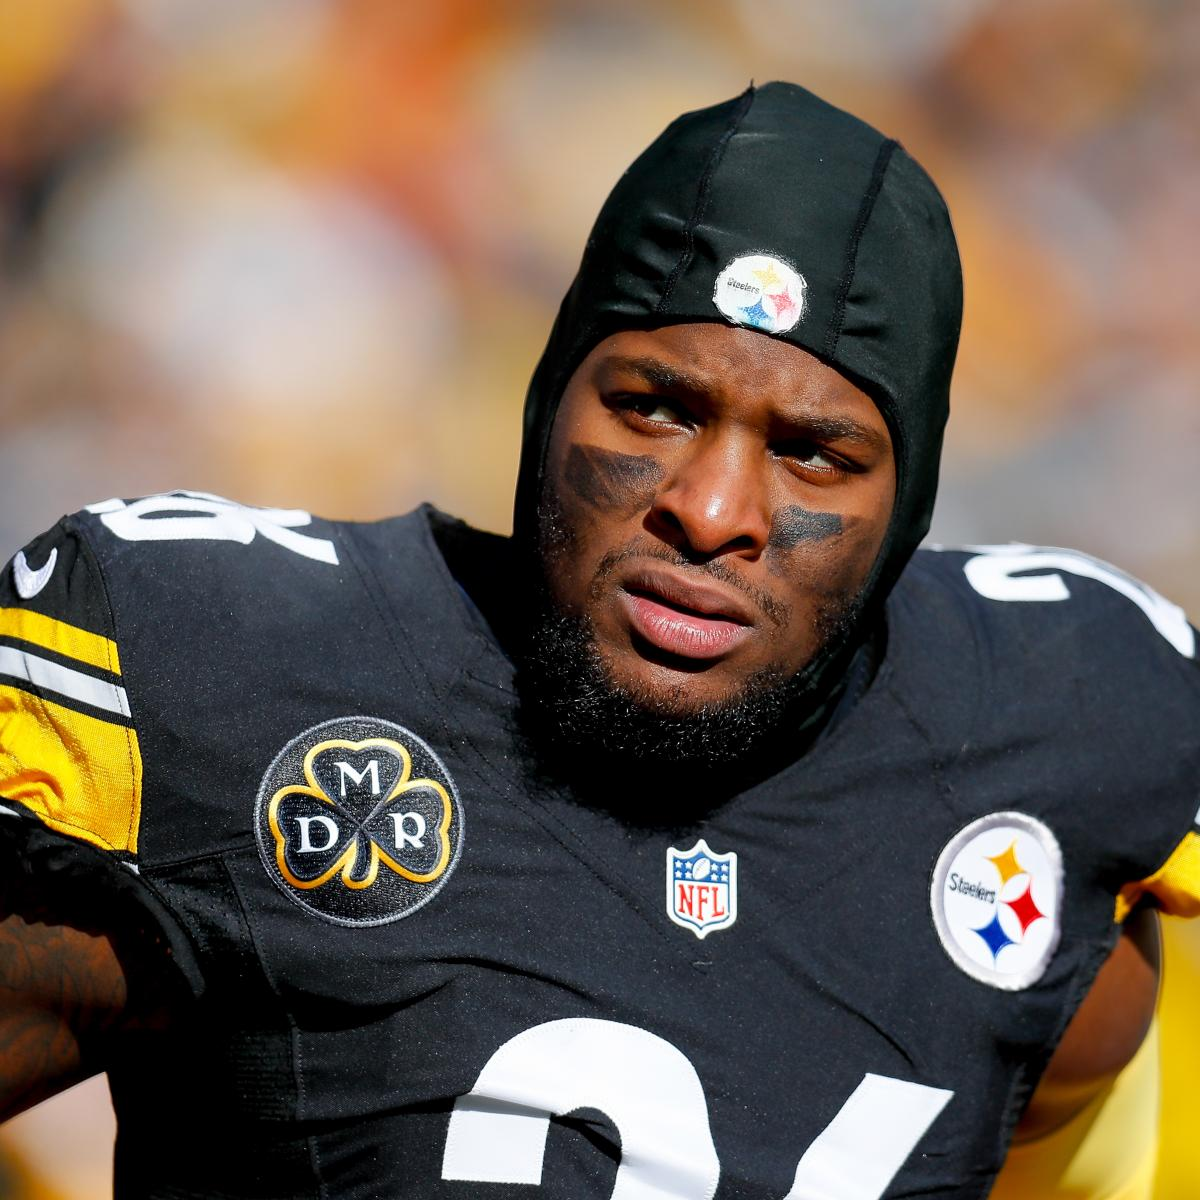 Report: Le'Veon Bell to Skip Steelers OTAs After Getting Franchise Tagged Again